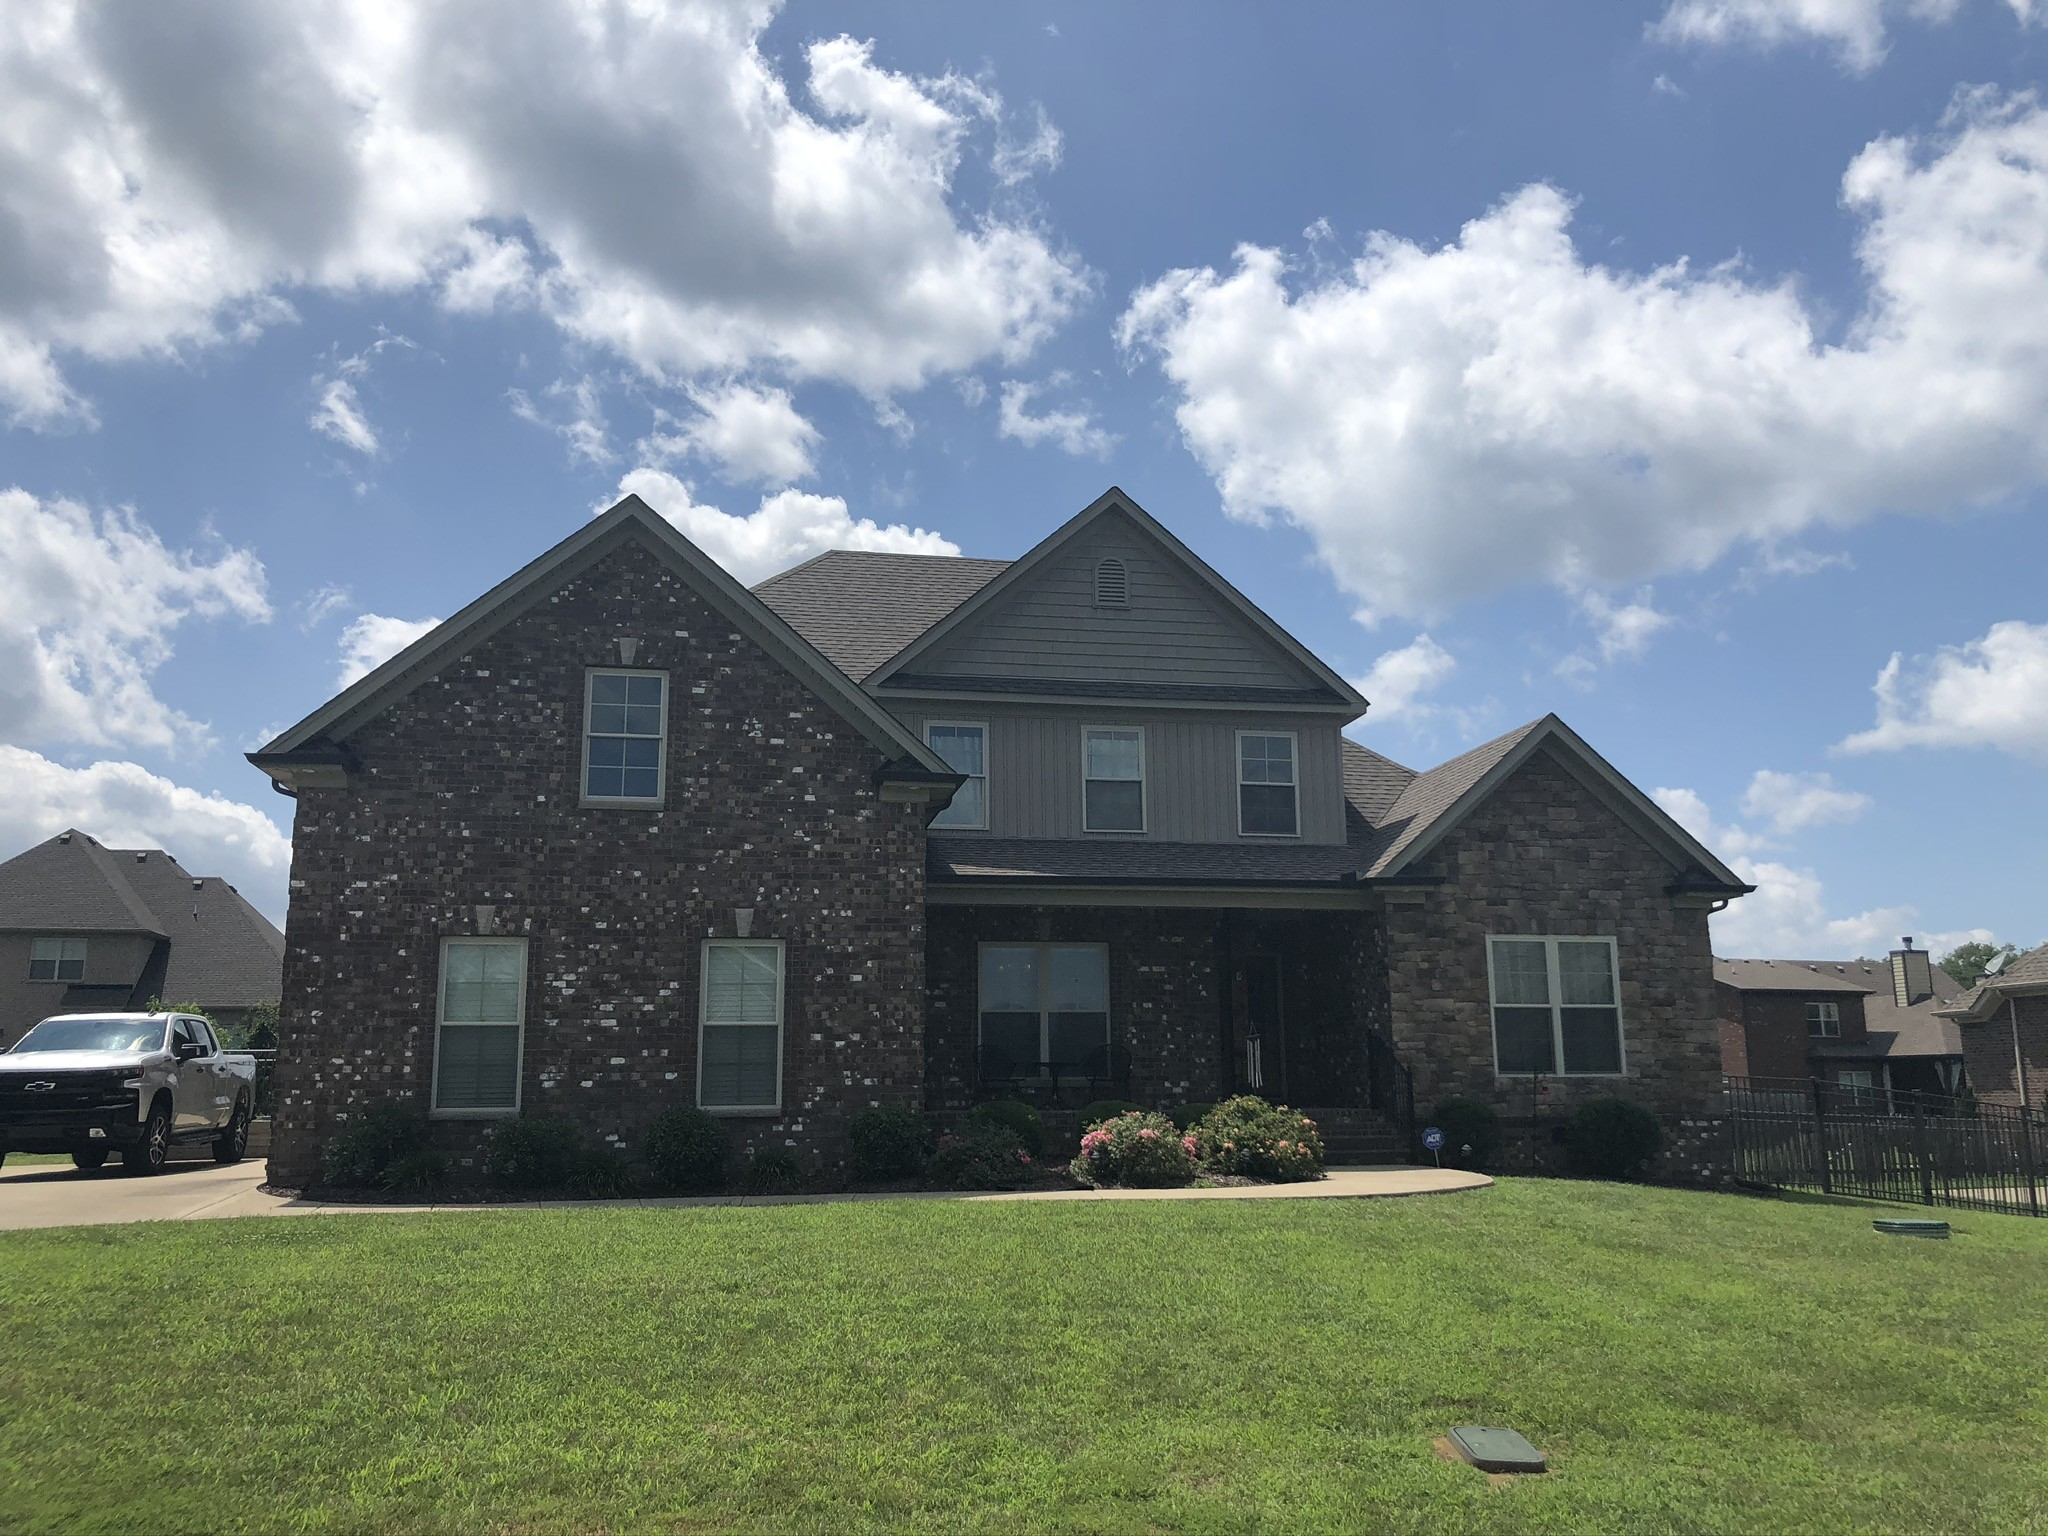 Fantastic opportunity in highly sought after SpringHouse in Murfreesboro.  4 Bedrooms 3 Full Baths with Owner's suite on main level. Home has hardwood floors thru kitchen and living room. Master bathroom is very nice with double vanities and tile shower with rain head. Home is all brick with stone.  Oversized flat backyard.